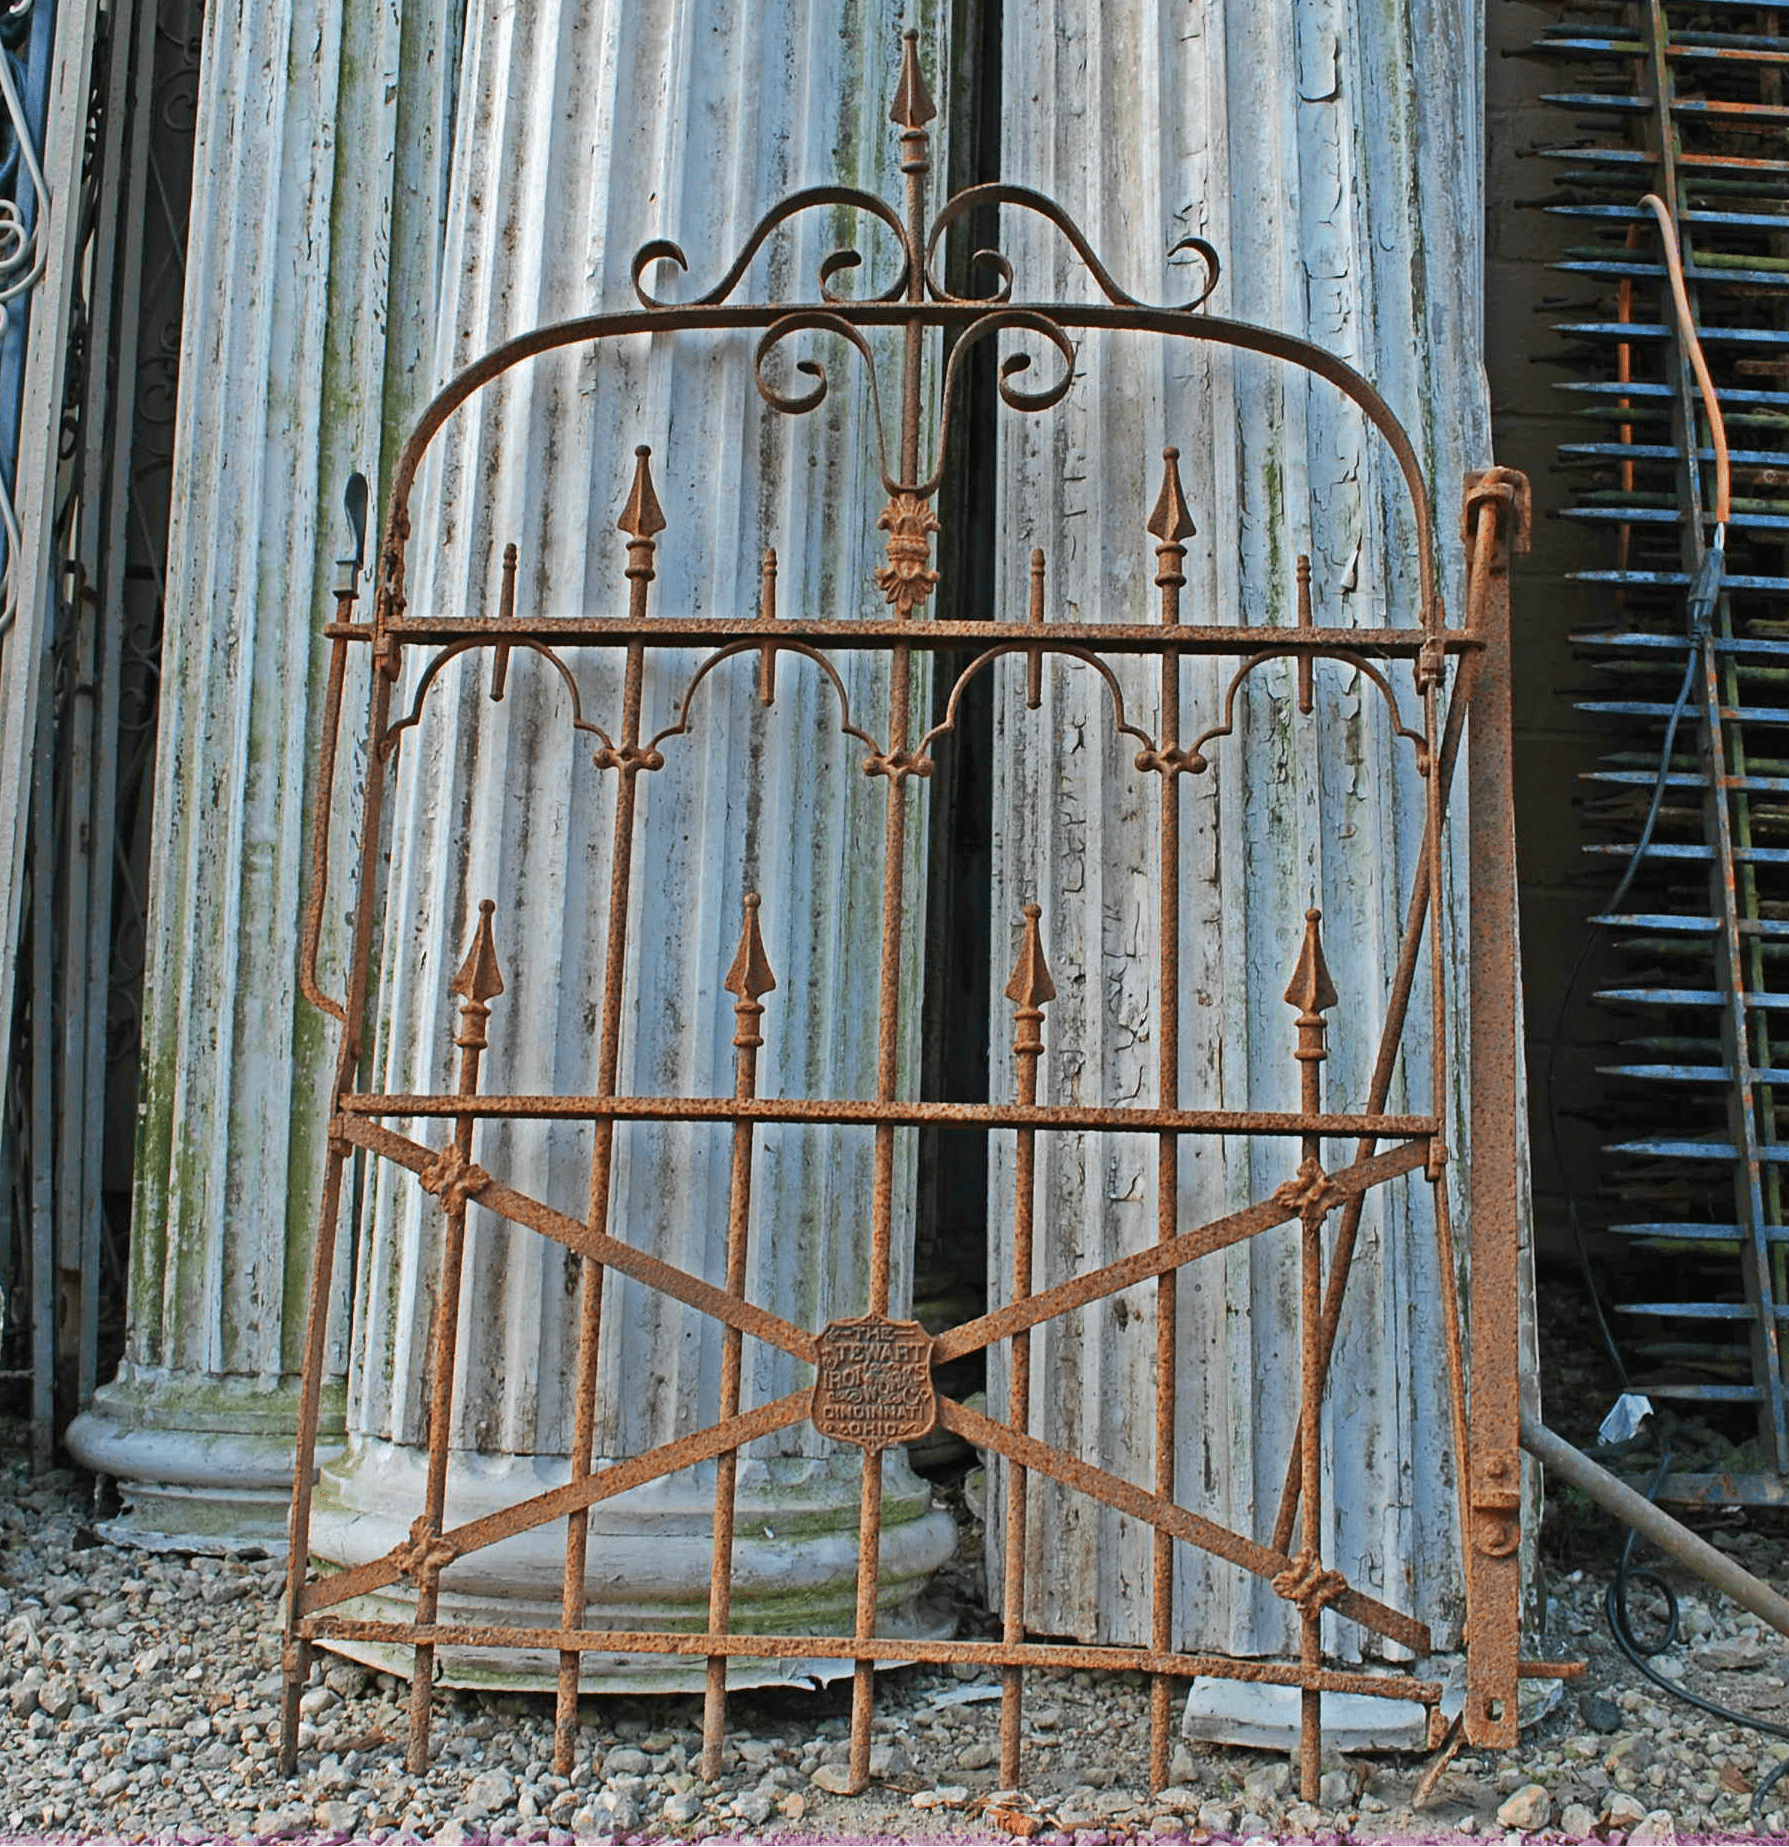 Wrought Iron Gates: Antique Stewart Iron Works Wrought Iron Gate